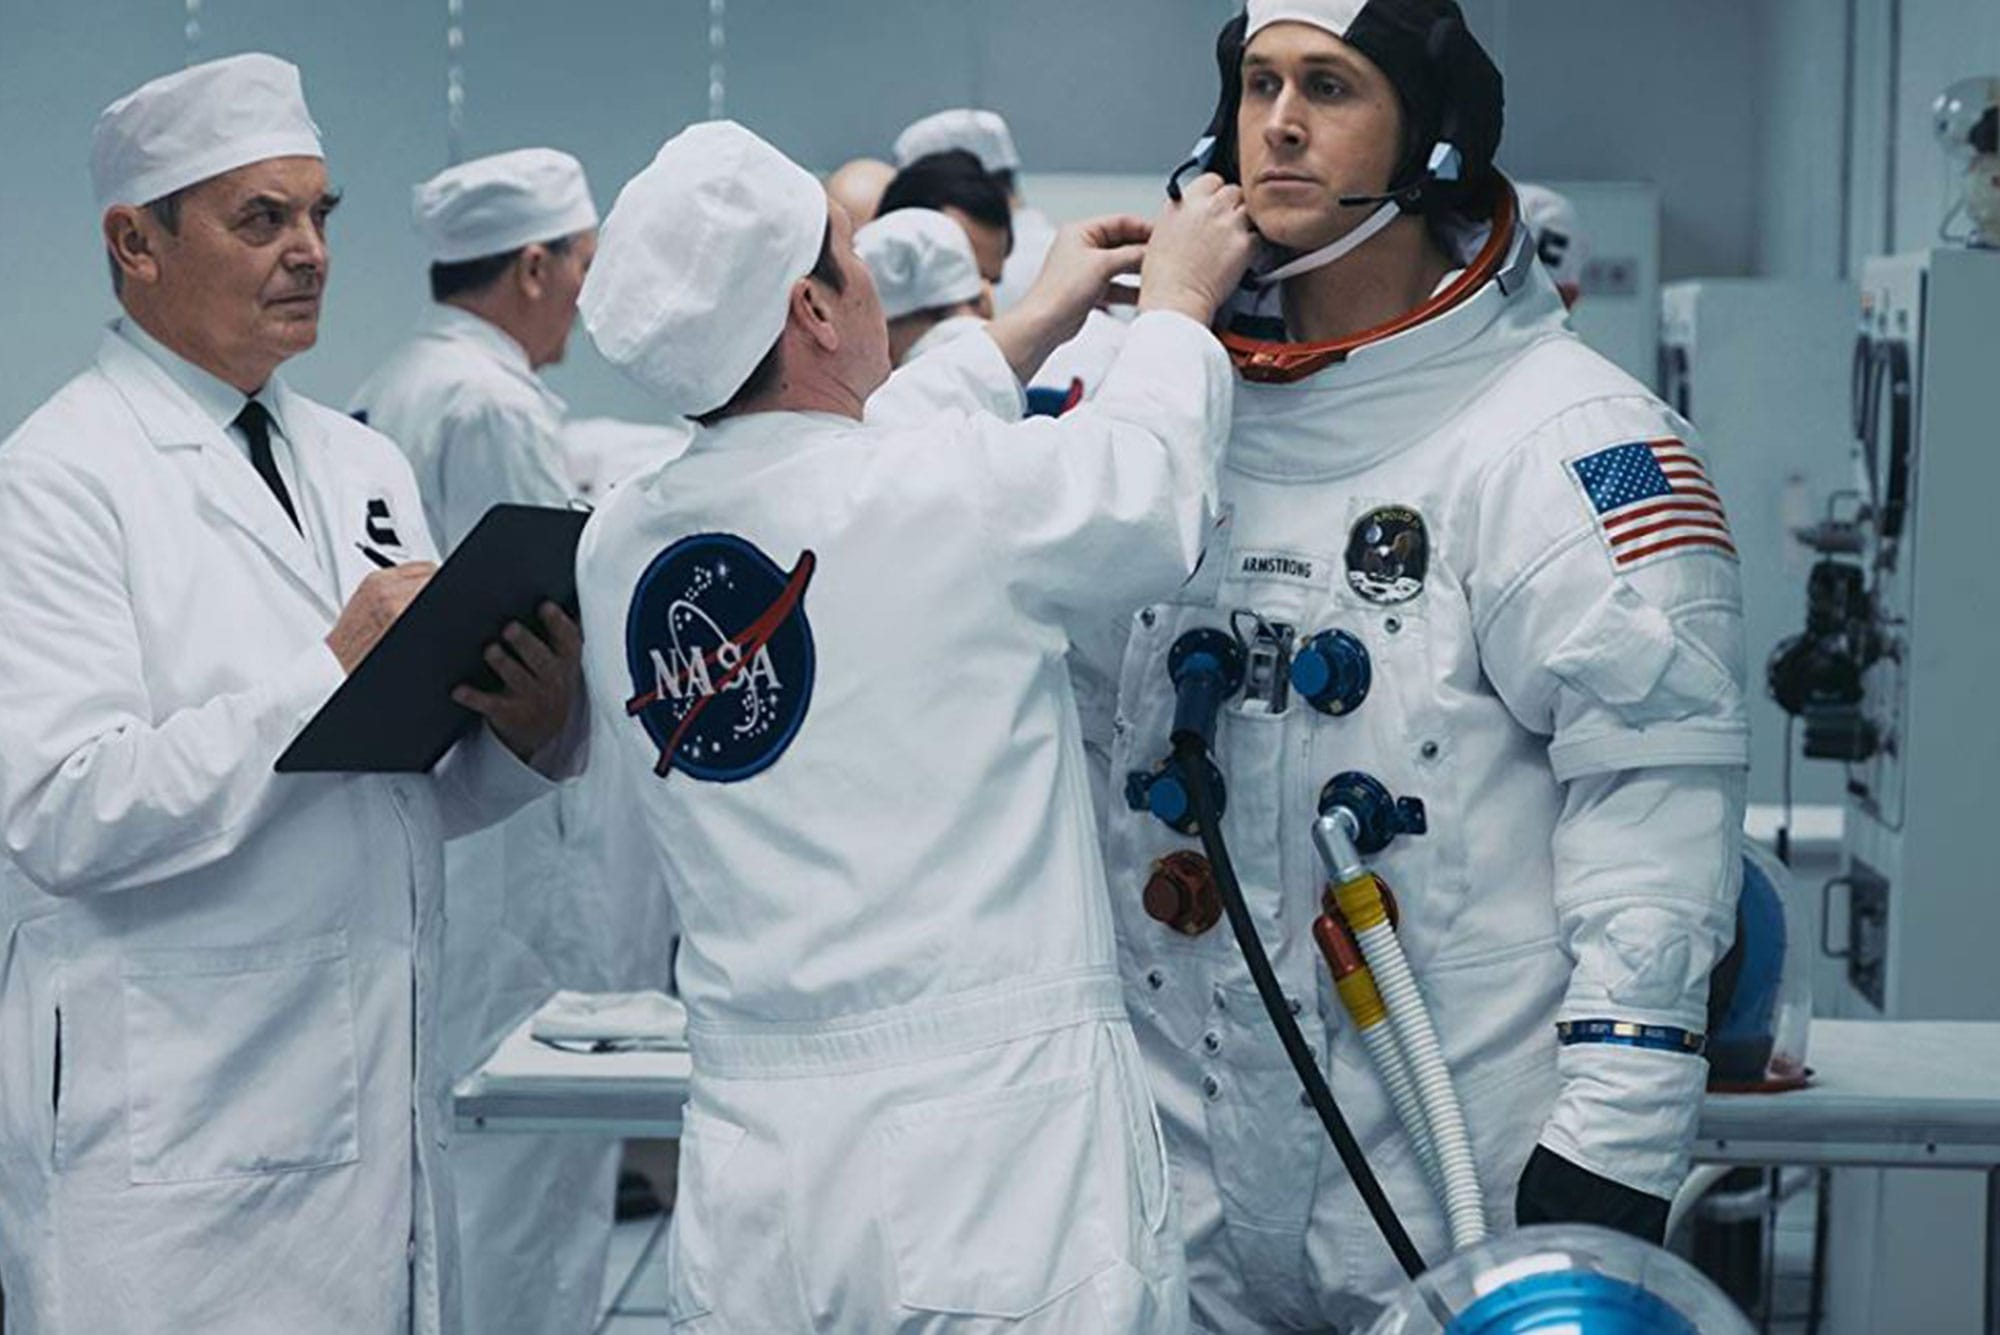 El actor Ryan Gosling en su papel de Neil Armstrong